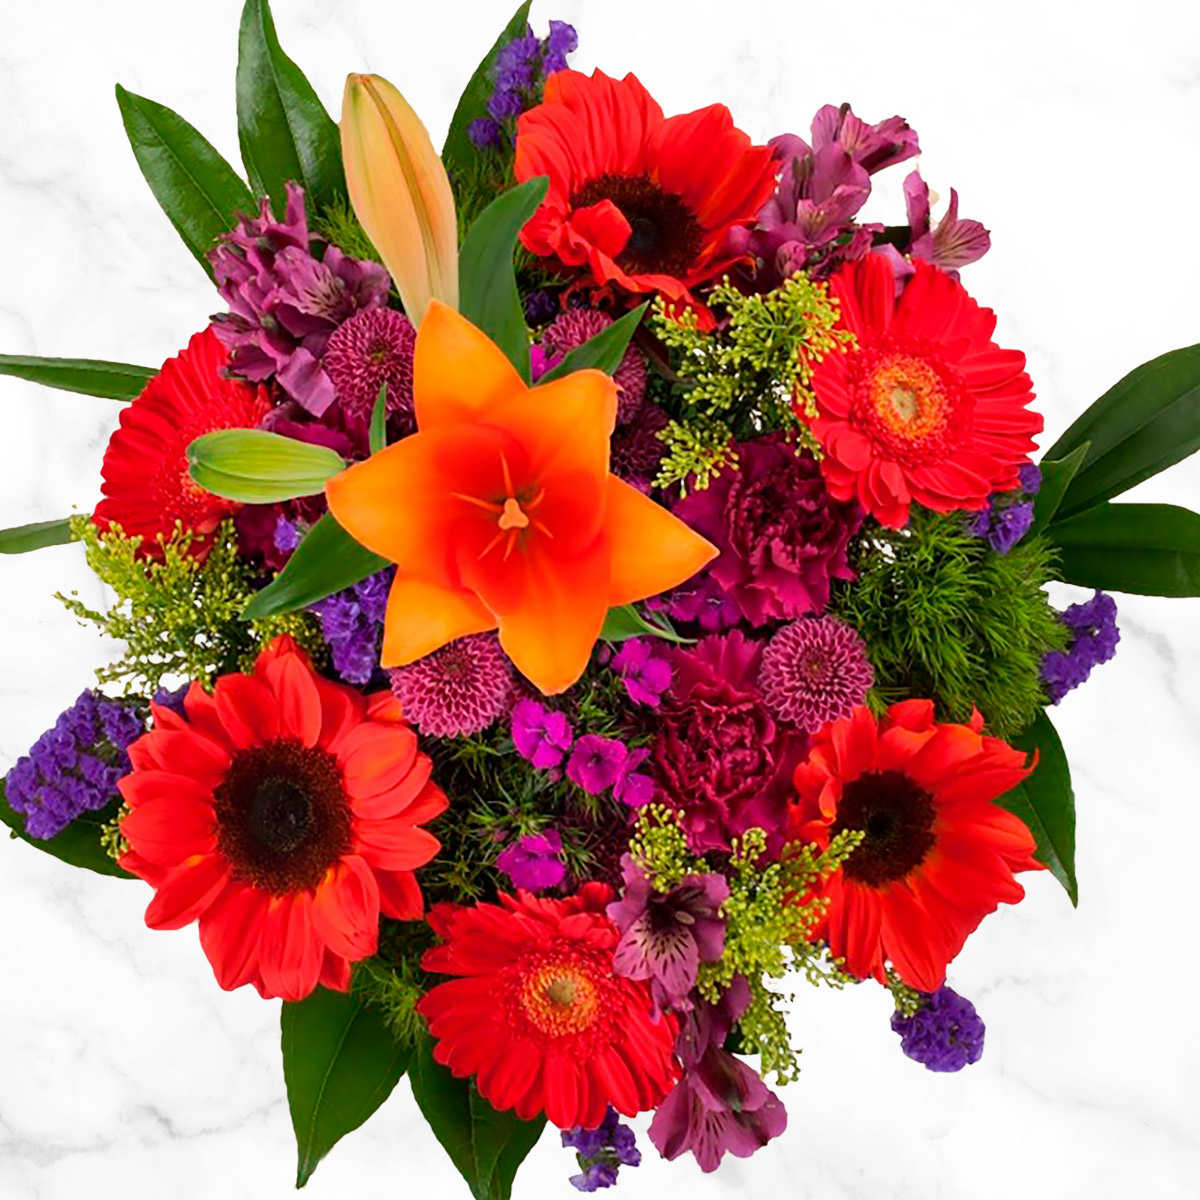 Pleasing 20 floral arrangement pictures design decoration Floral creations